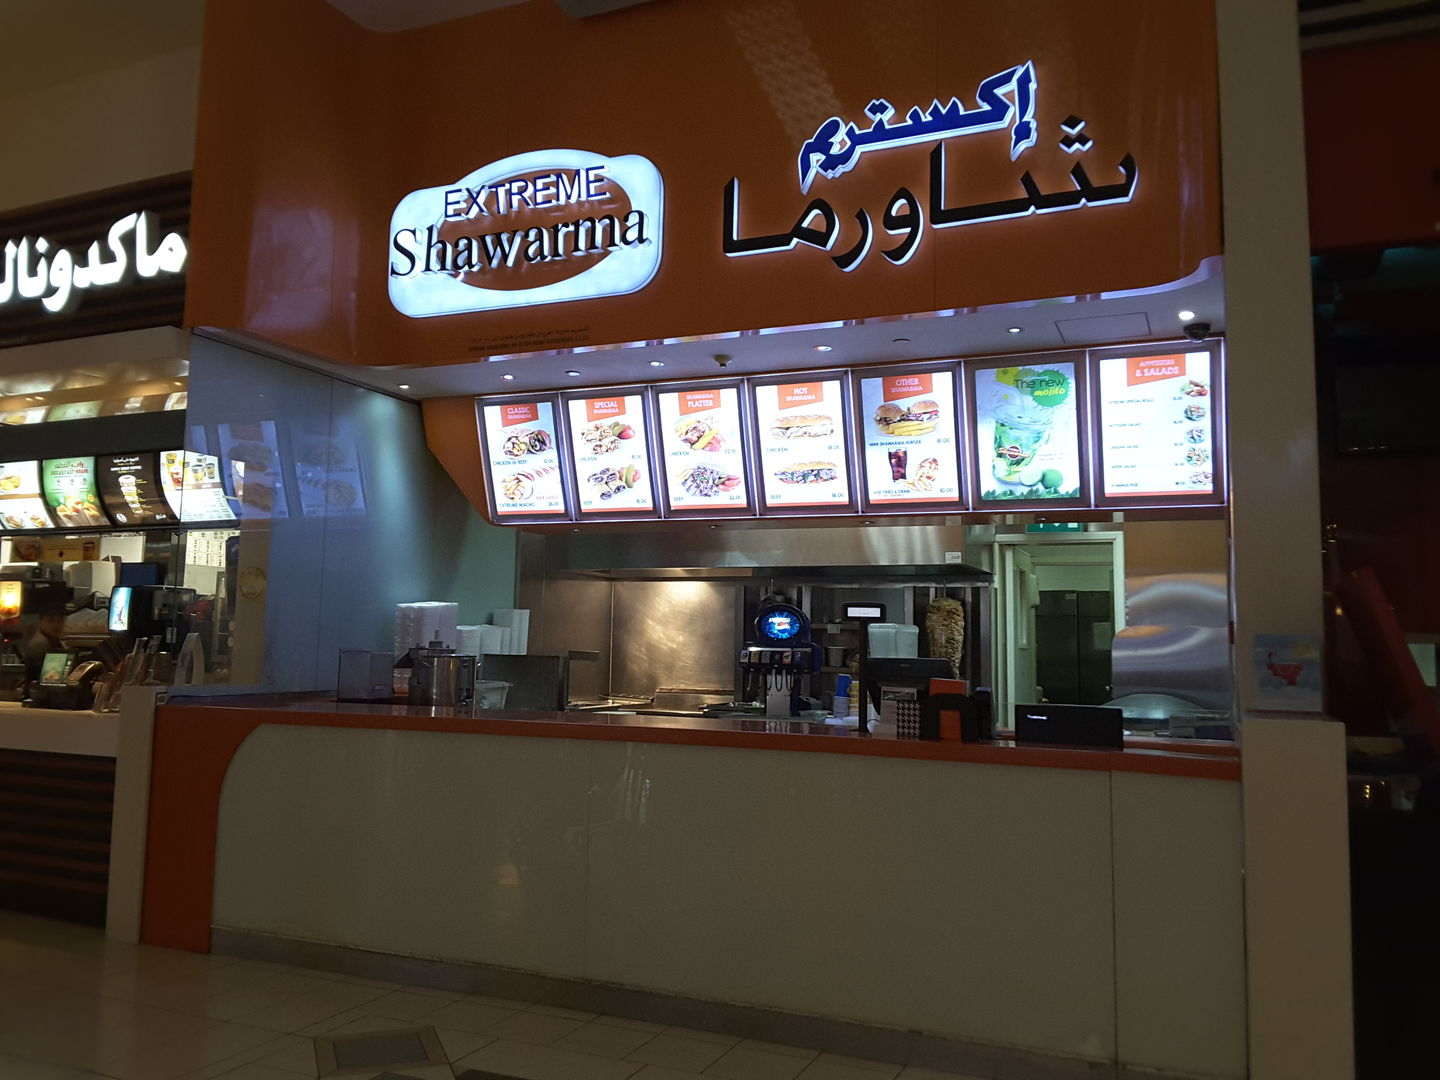 HiDubai-business-extreme-shawarma-food-beverage-restaurants-bars-ibn-batuta-jebel-ali-1-dubai-2